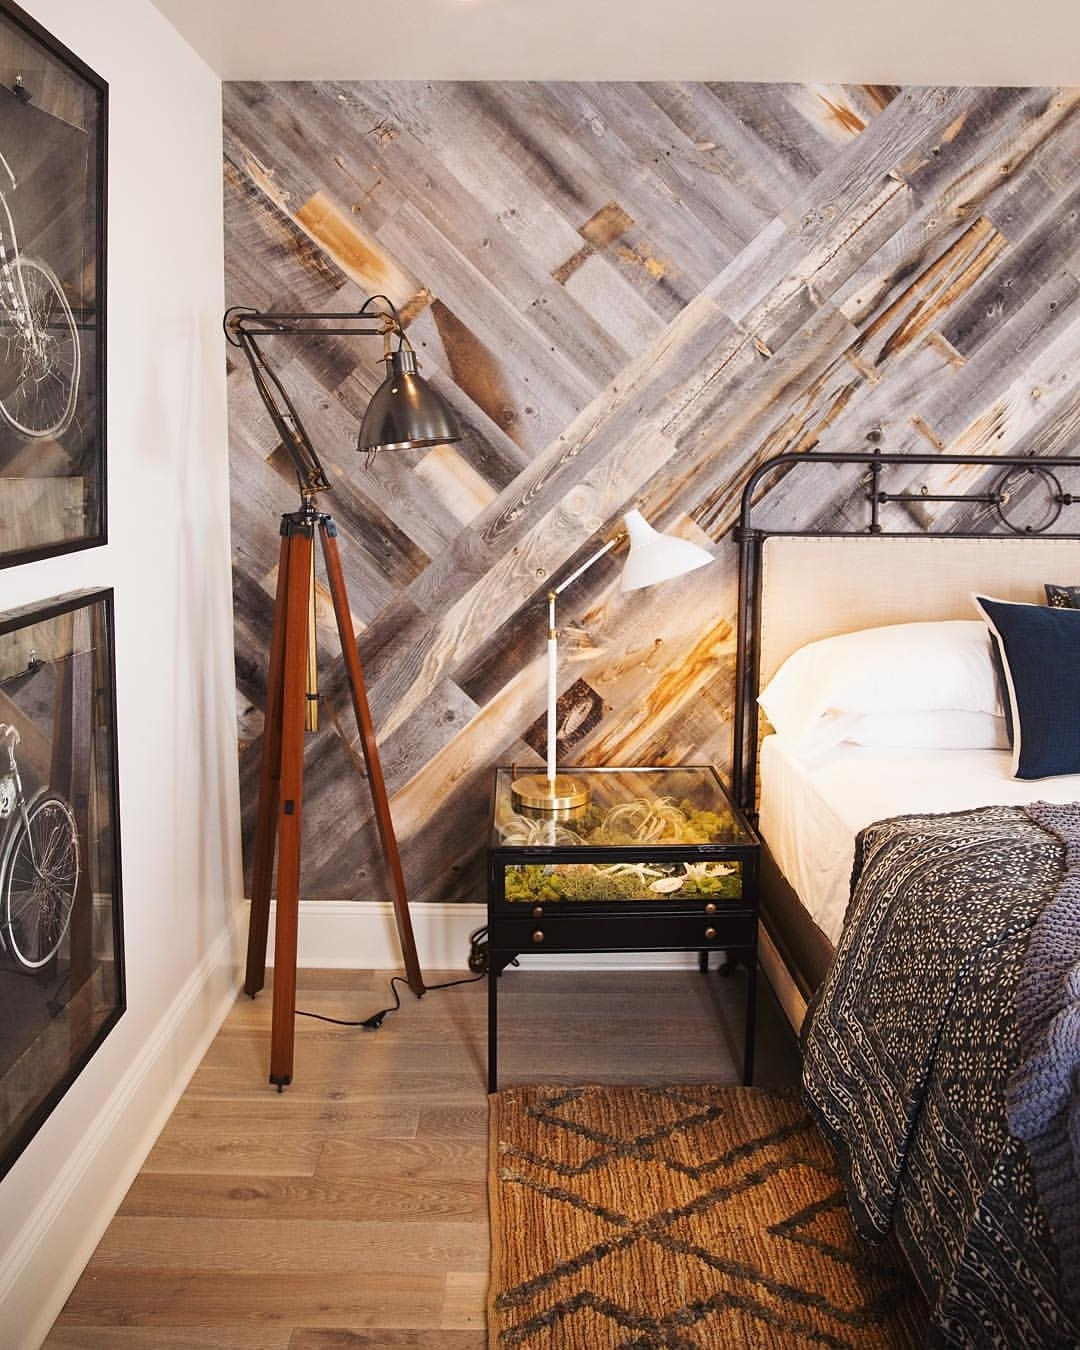 Diy Easy Peel And Stick Wood Wall Decor For Most Up To Date Wood Paneling Wall Accents (View 7 of 15)